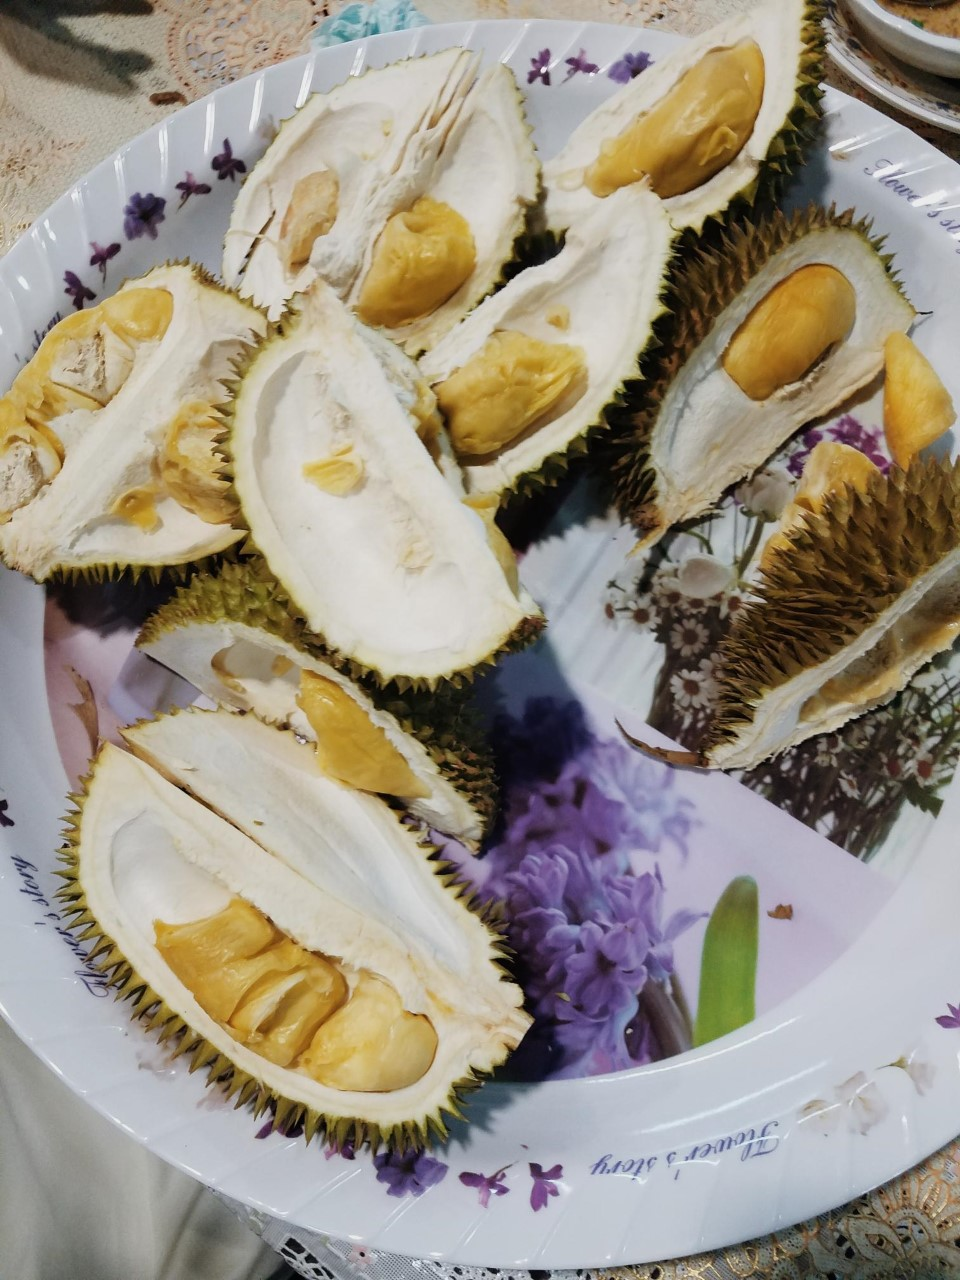 Inside of durian